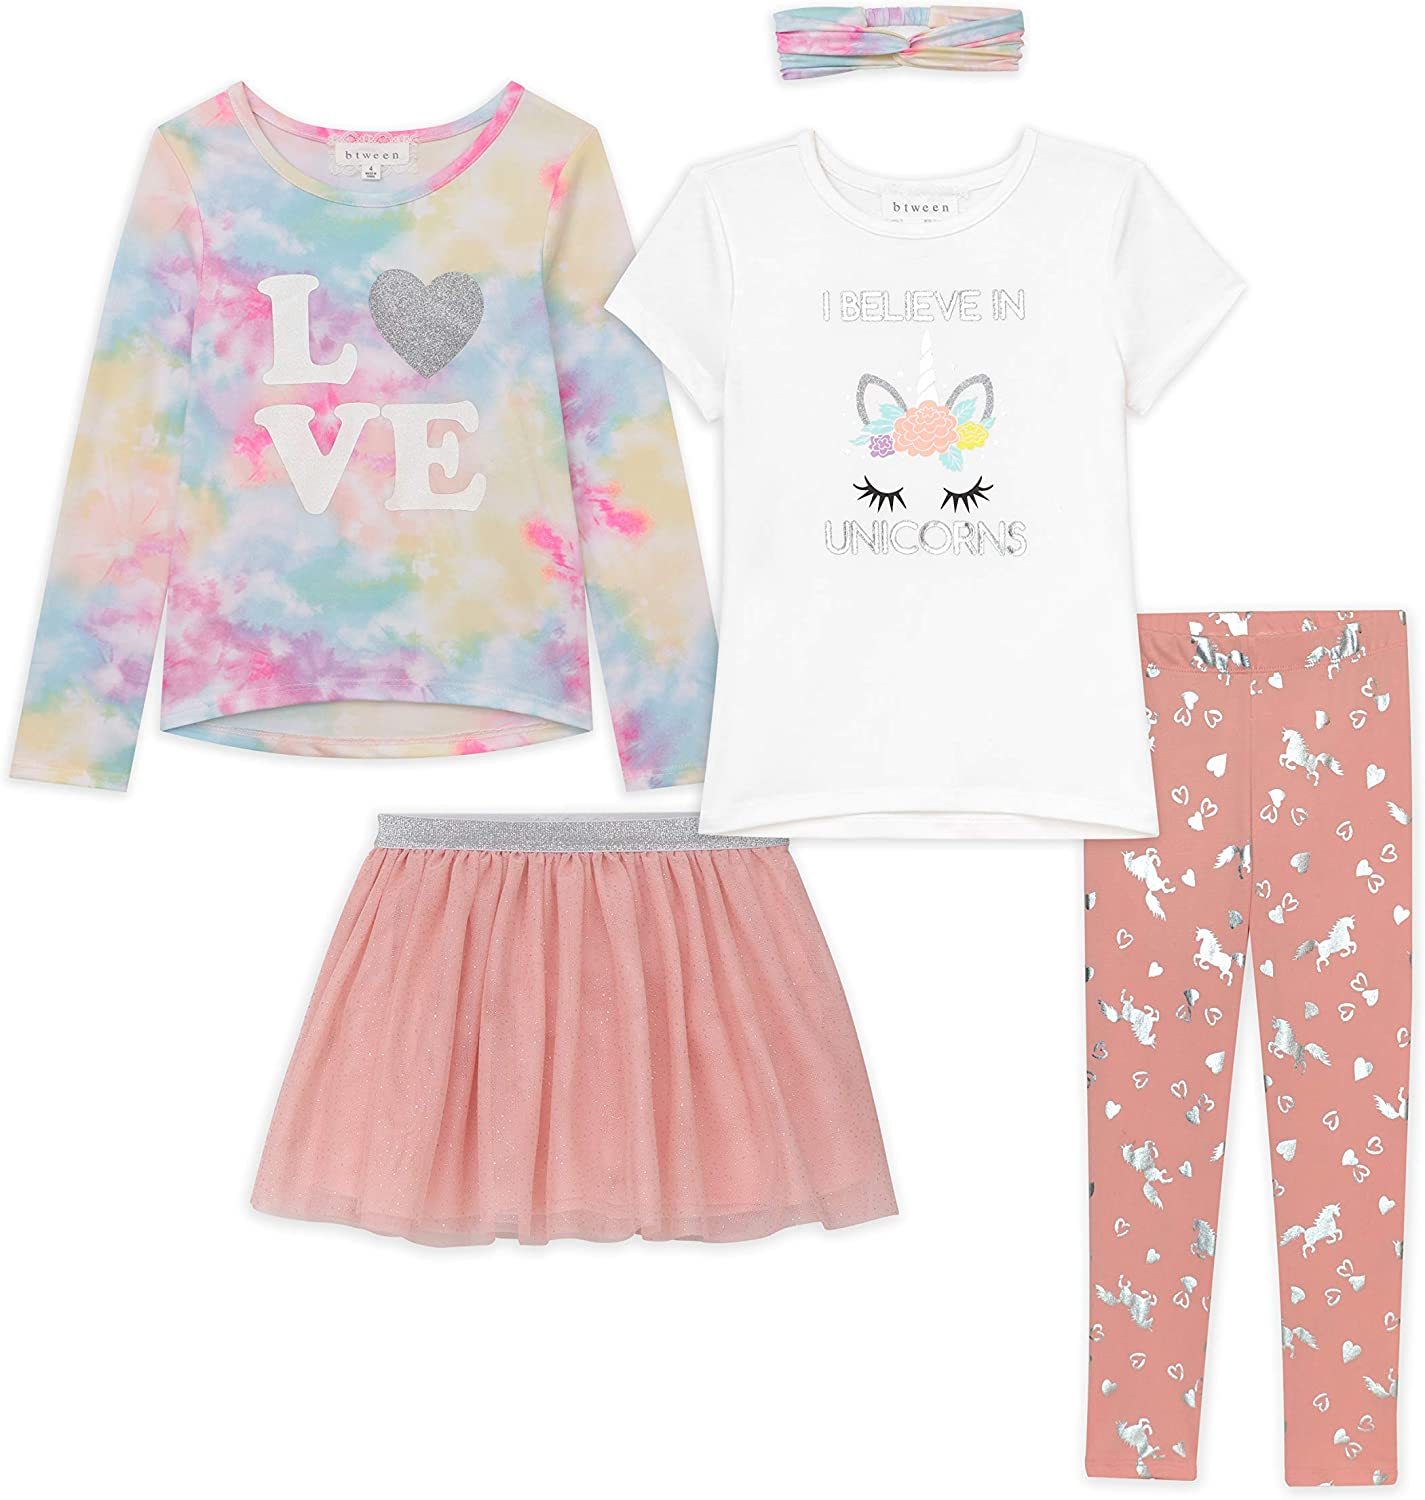 Btween Girls Kids Fall Clothing and Max 50% OFF Accessory Deluxe And Mix Set- M 5pc